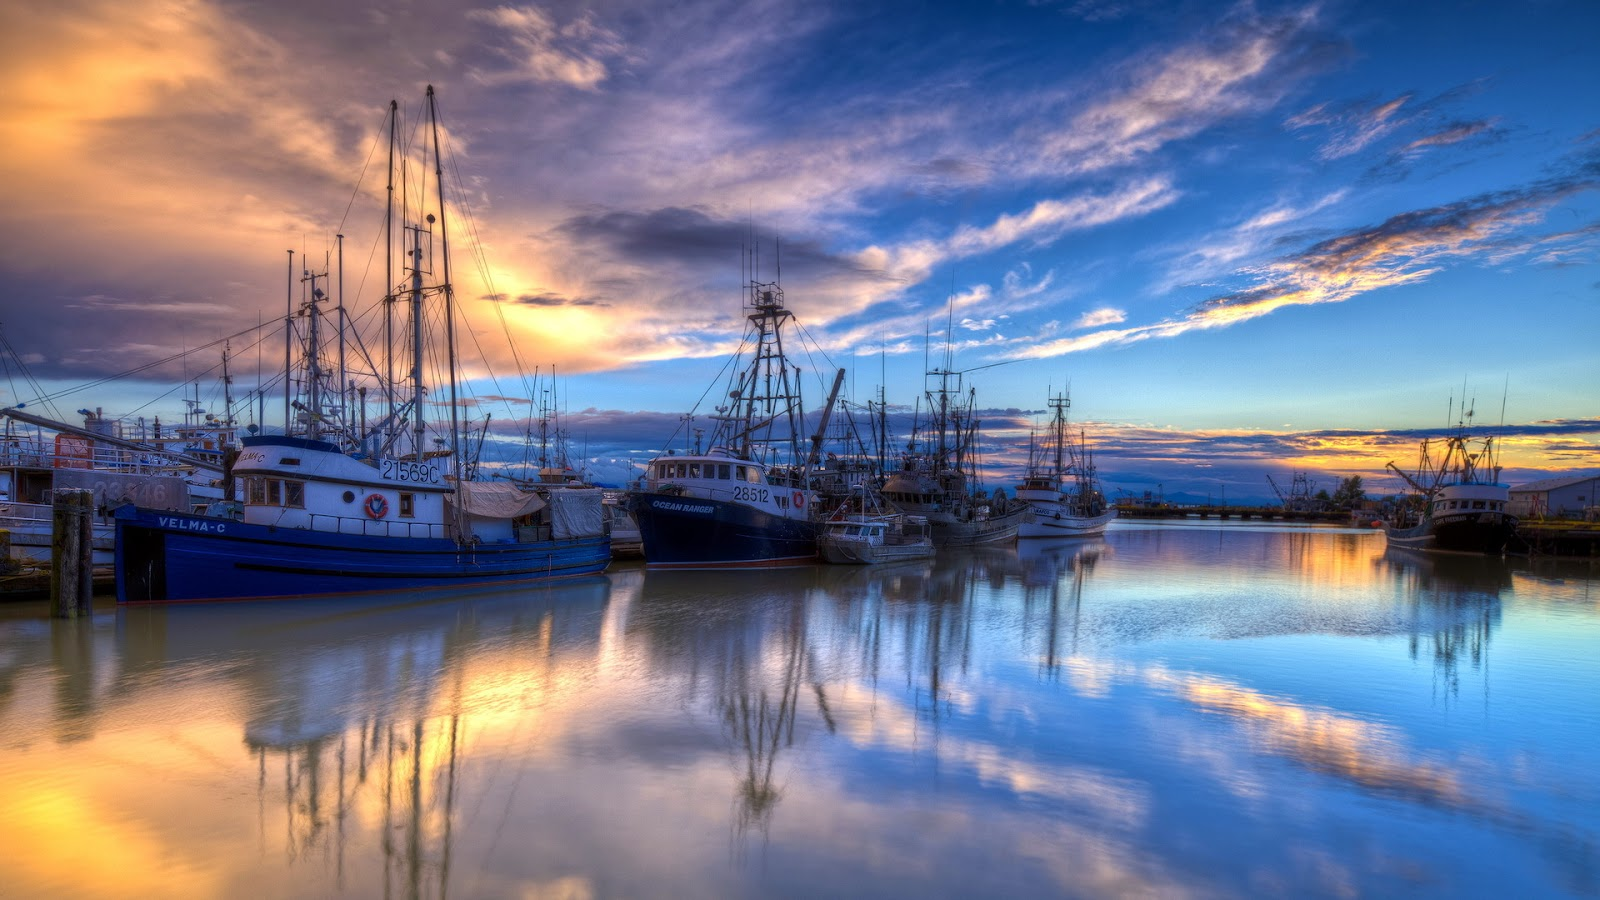 boats in the harbor.jpg